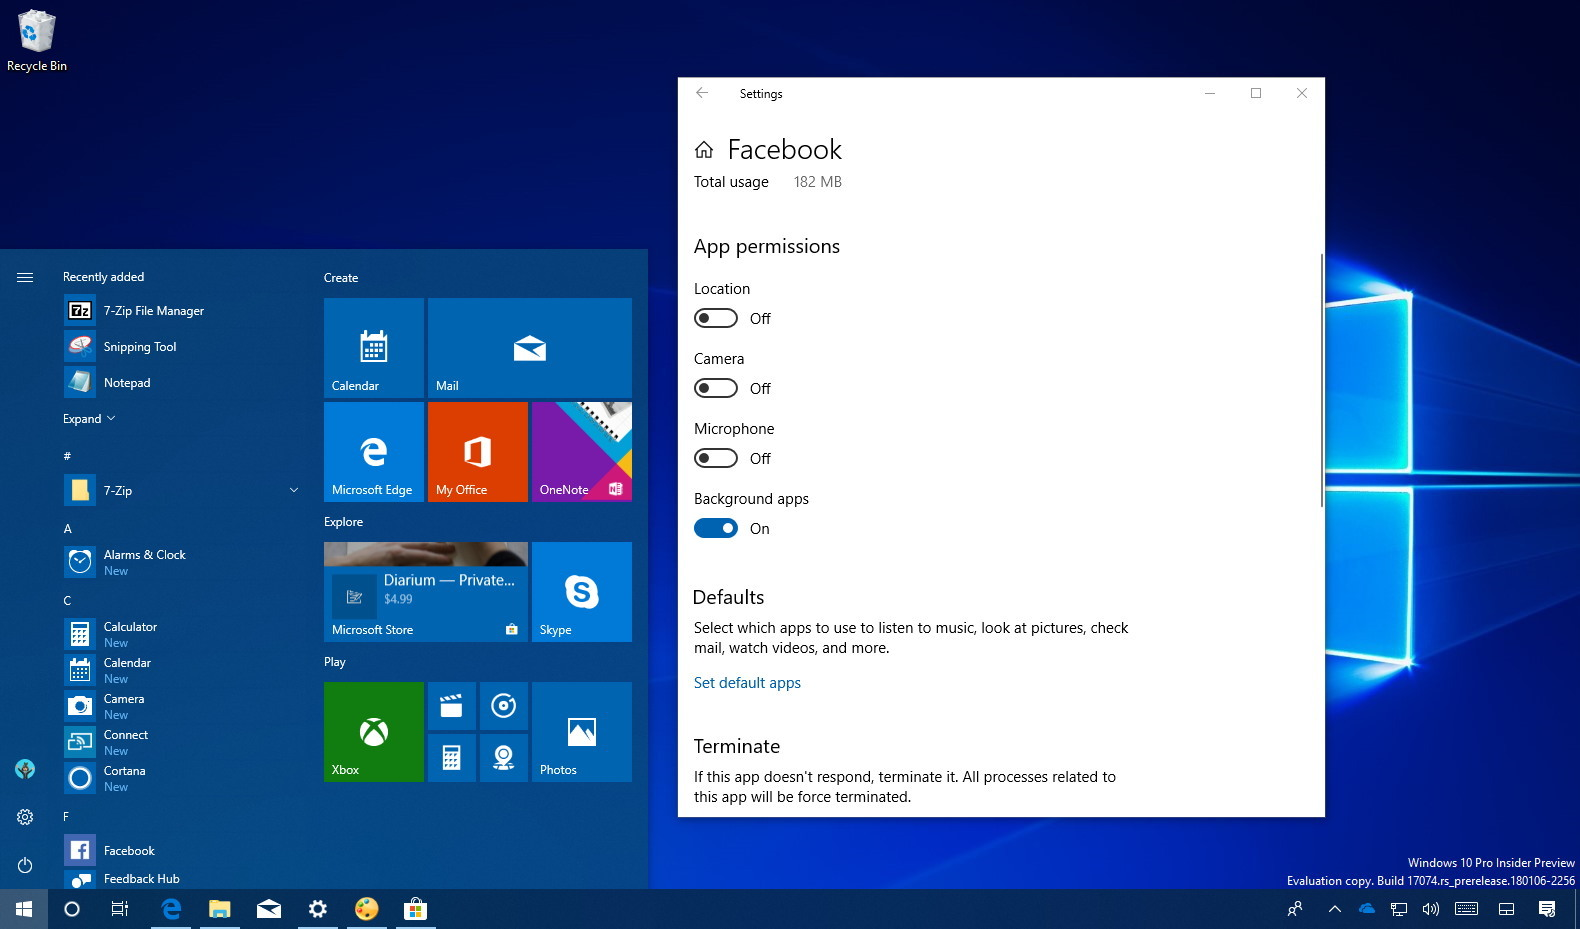 How to change app permissions on Windows 10 • Pureinfotech